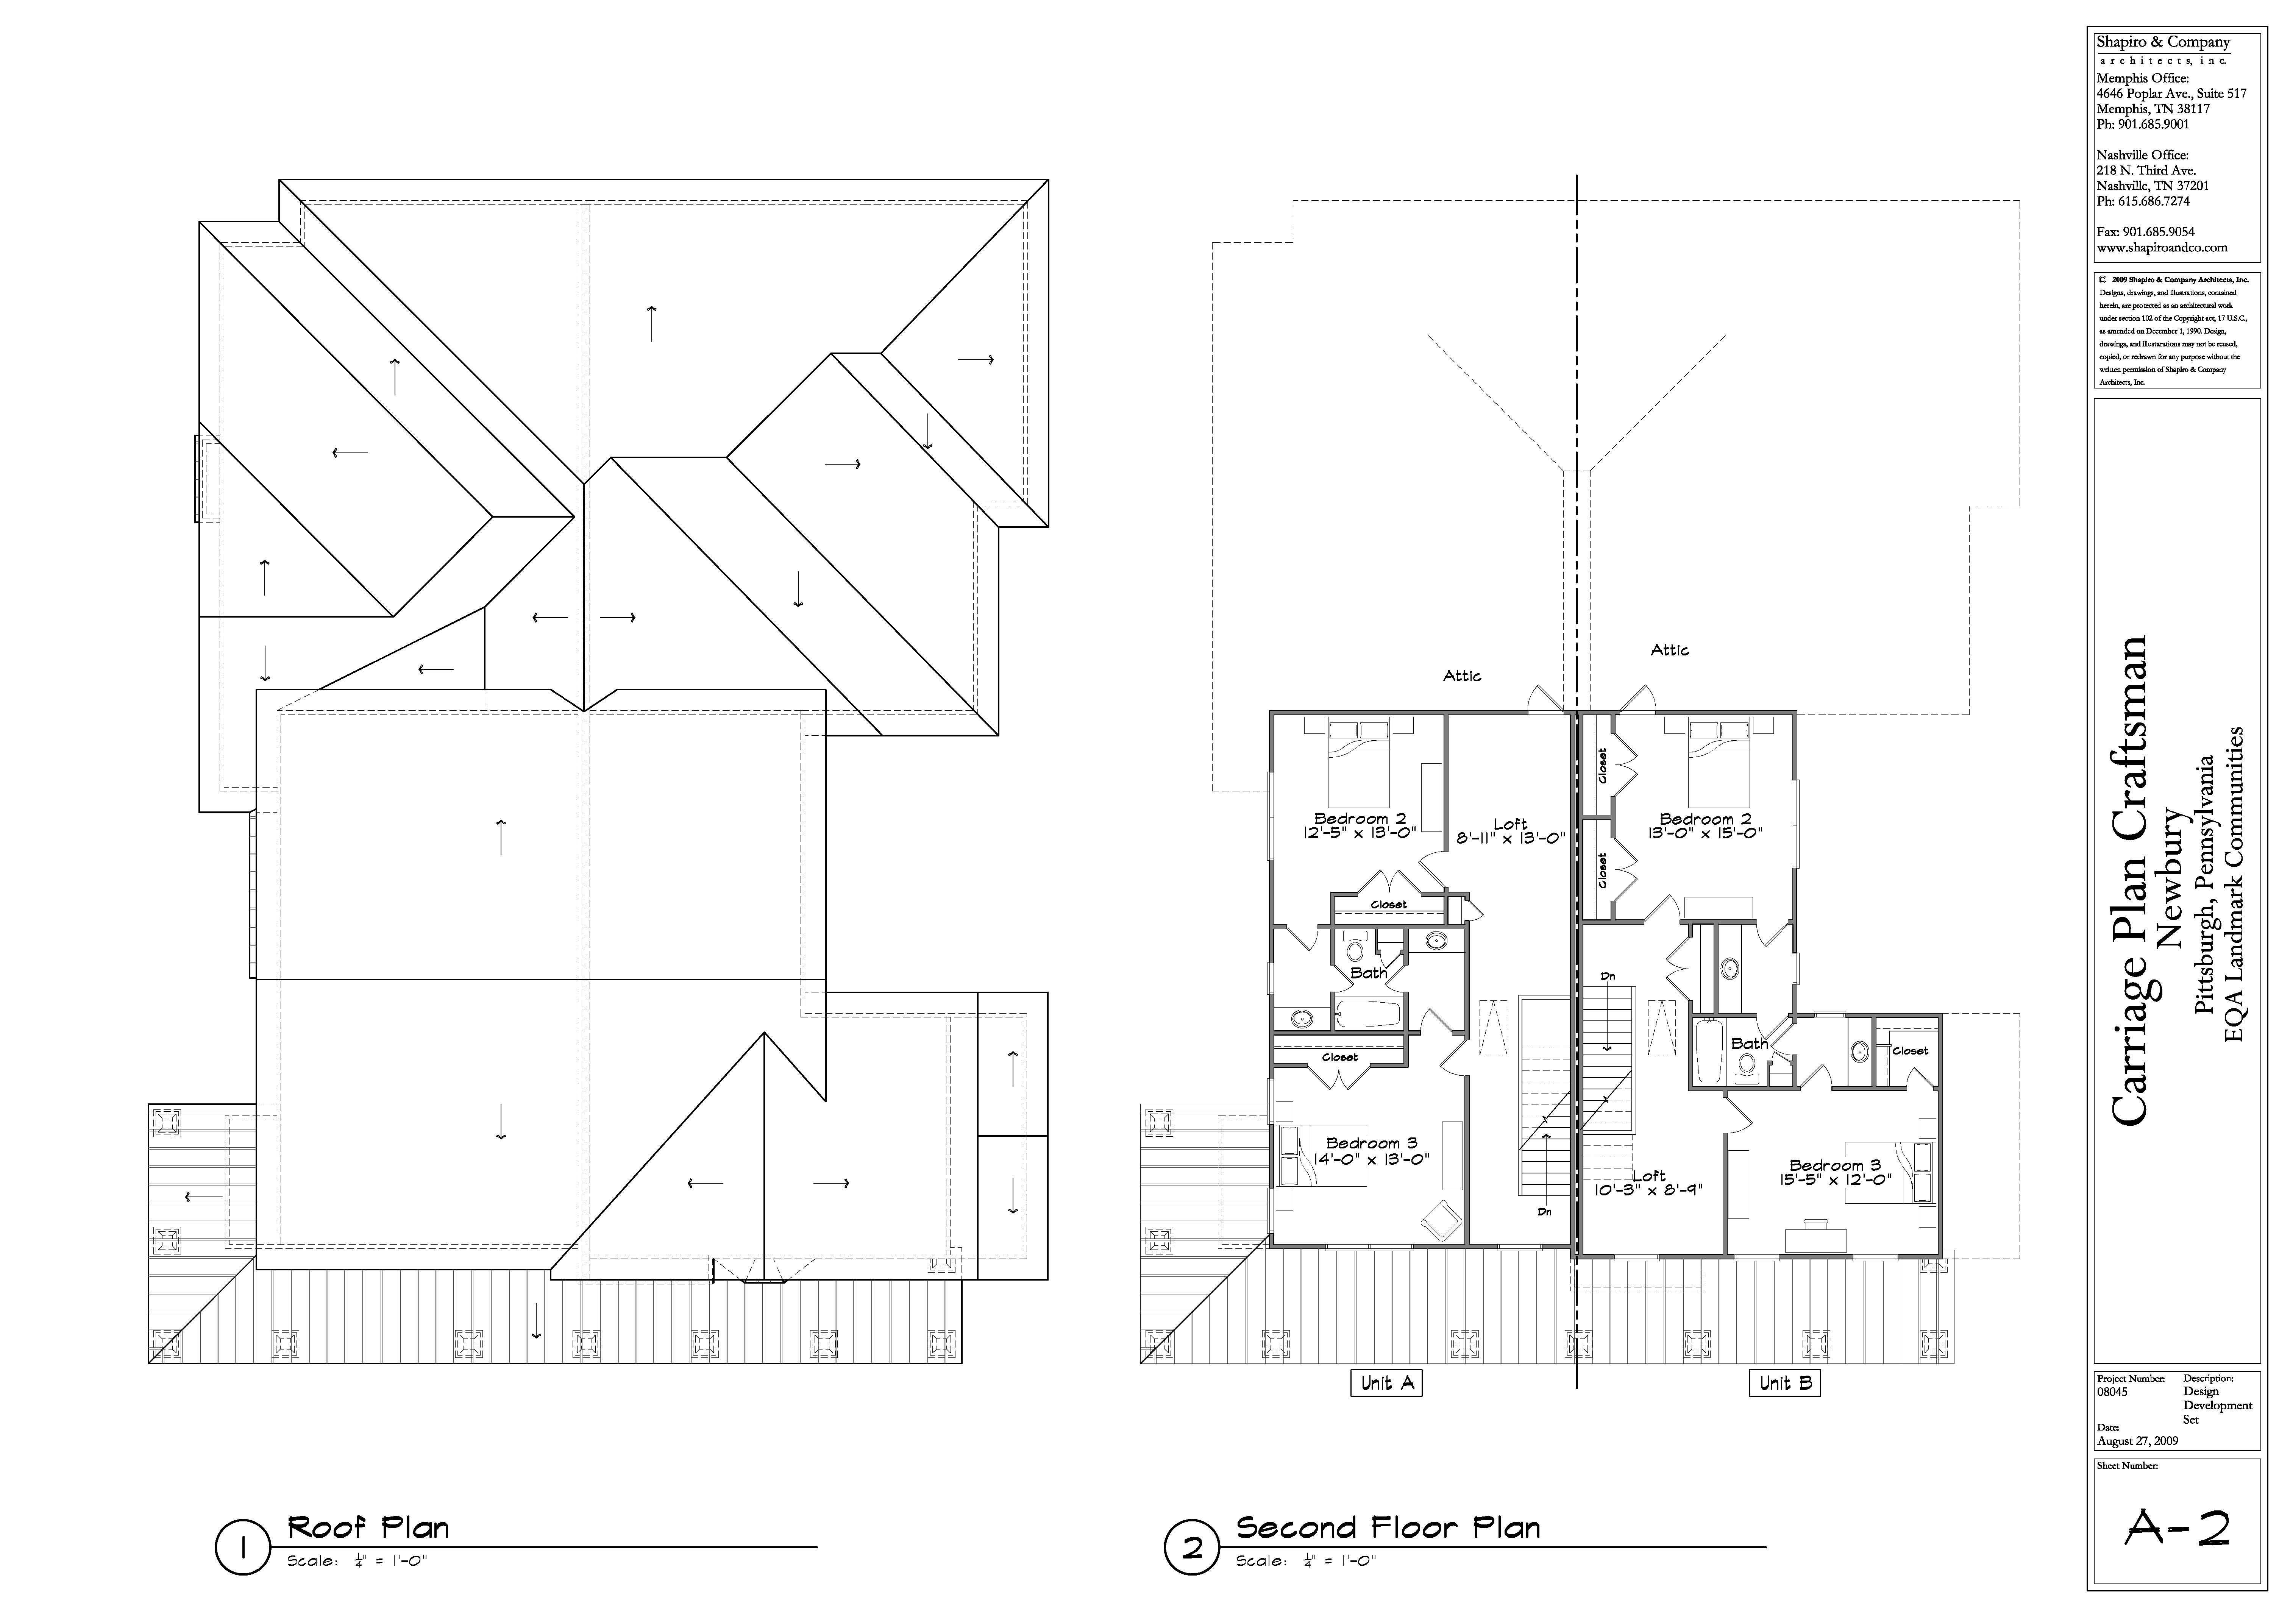 6018x4289 Roof Plan